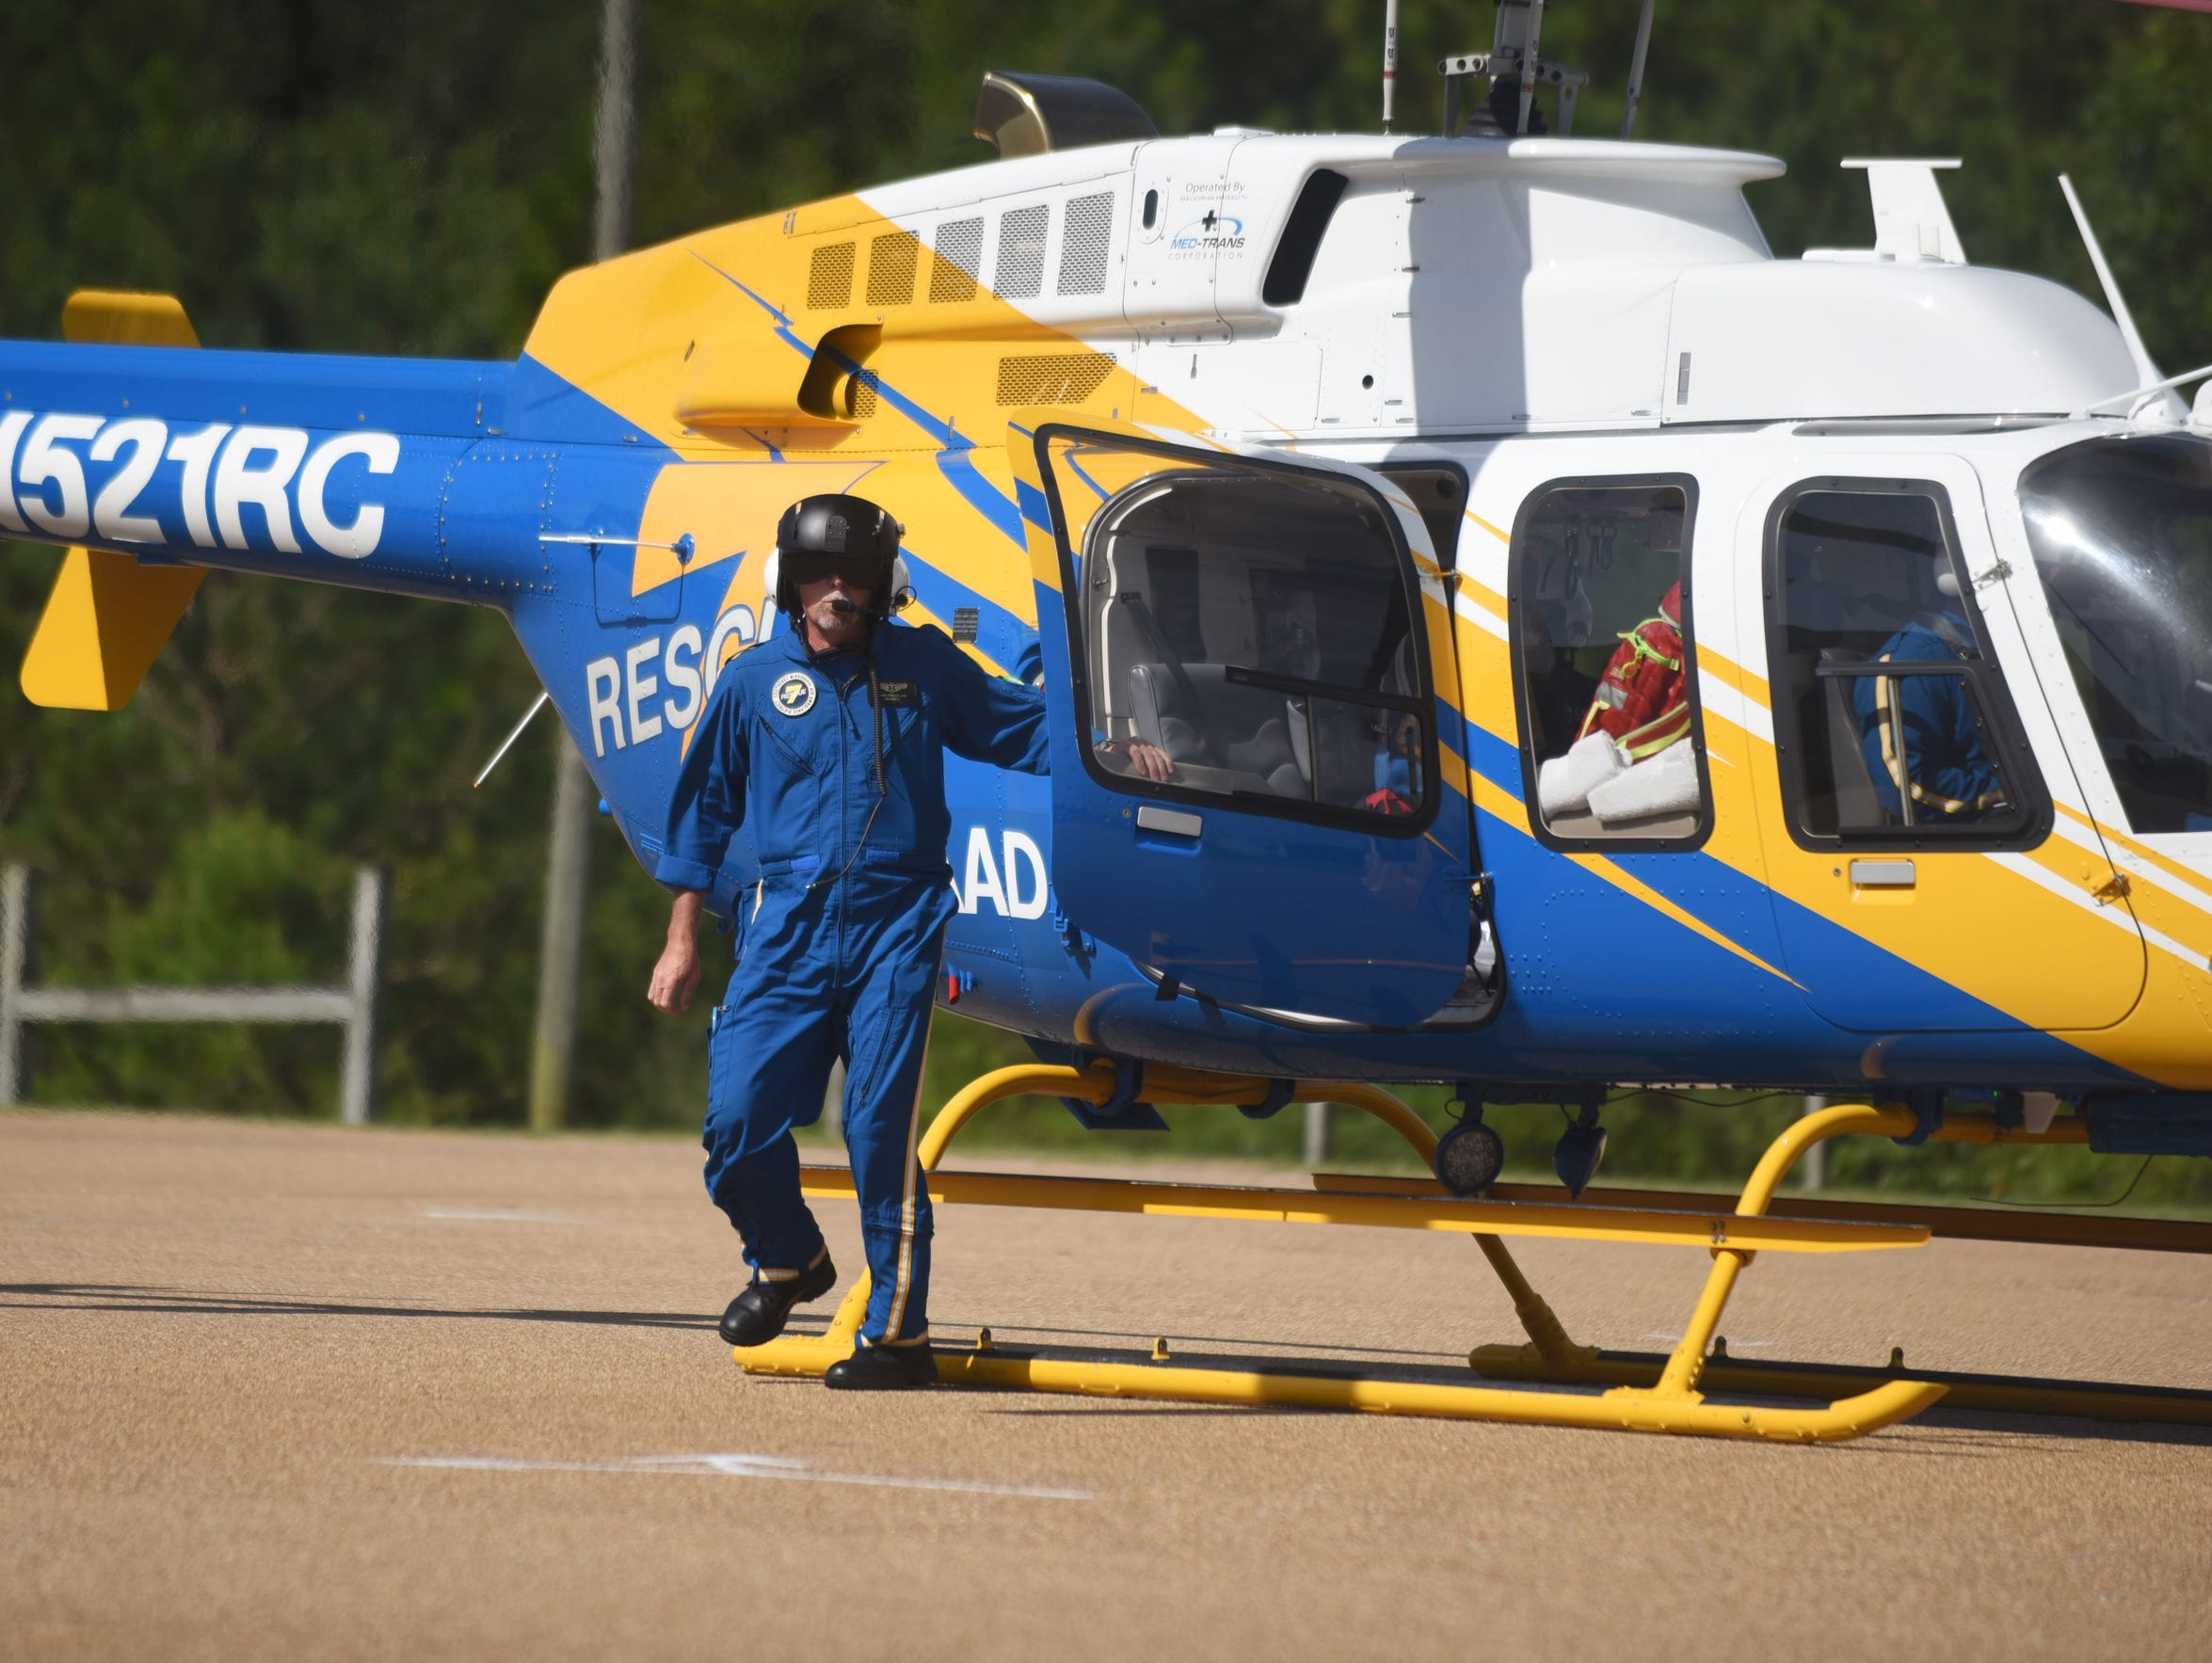 Med-Trans operates private air ambulances in the Pine Belt area. If they're picked up by Med-Trans, privately insured patients can expect to be charged a base rate of $22,710 base rate plus$216 for every mile they travel.